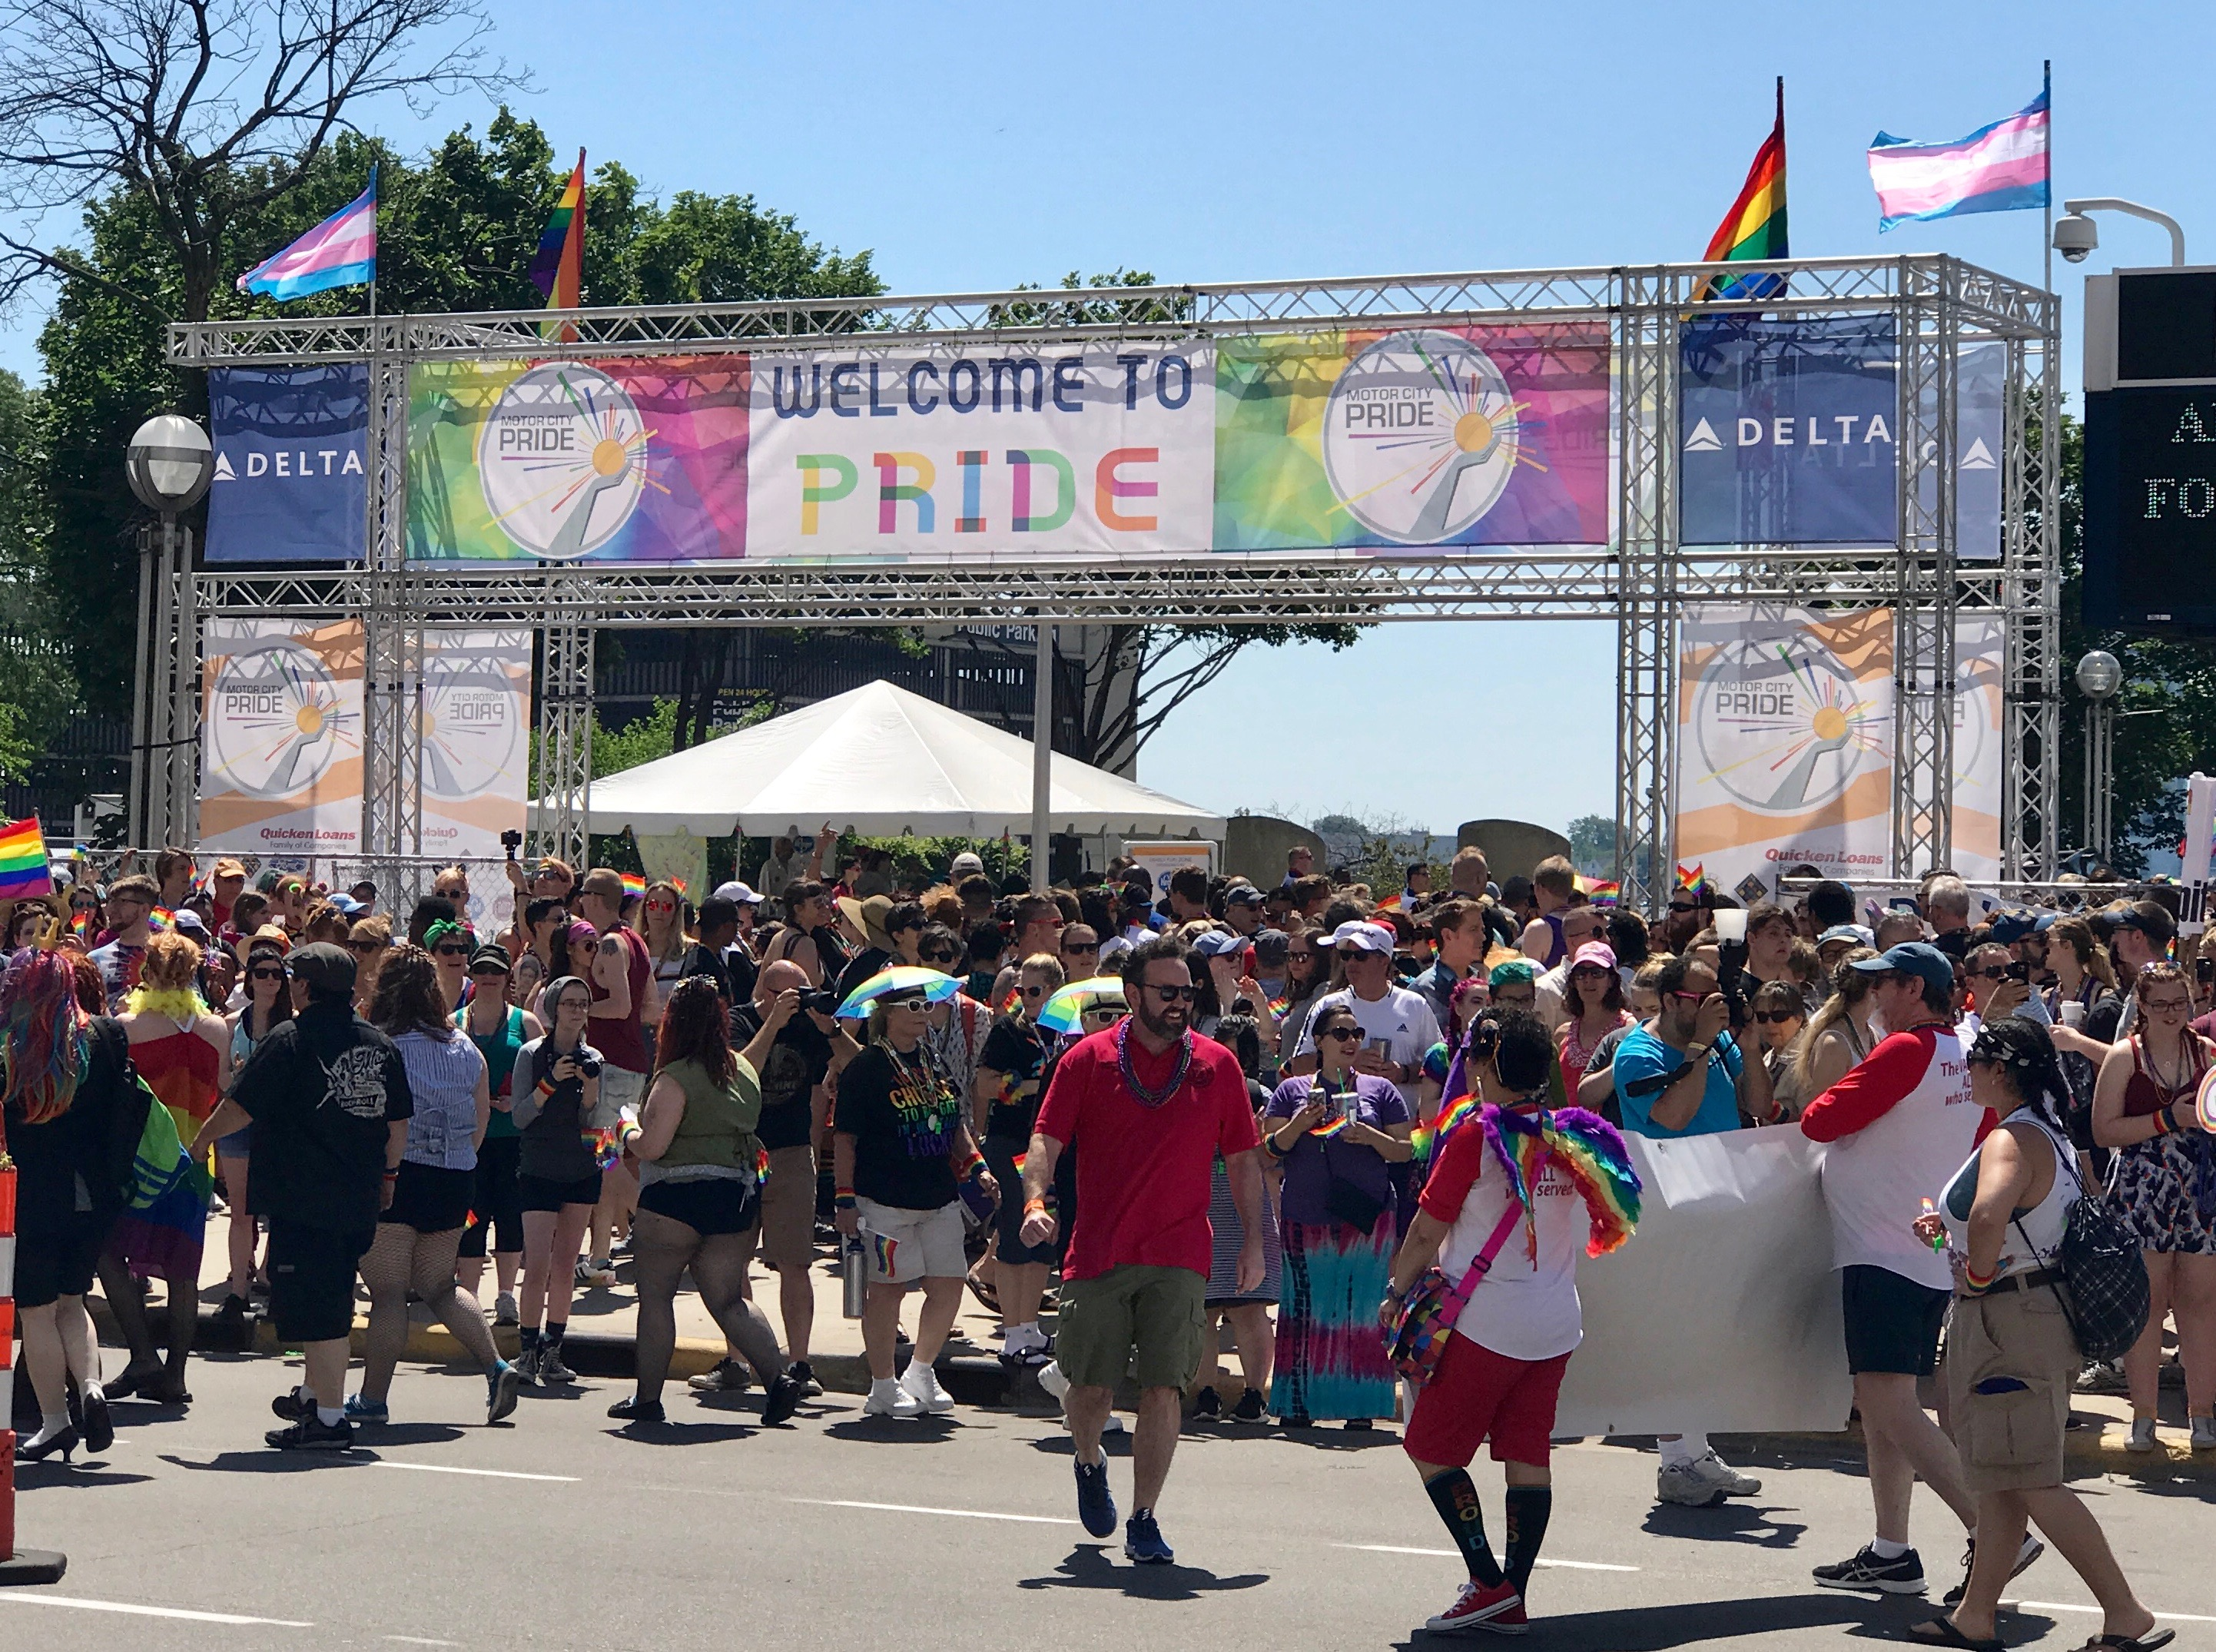 File:Motor City Pride 2017 entrance (2568).jpg